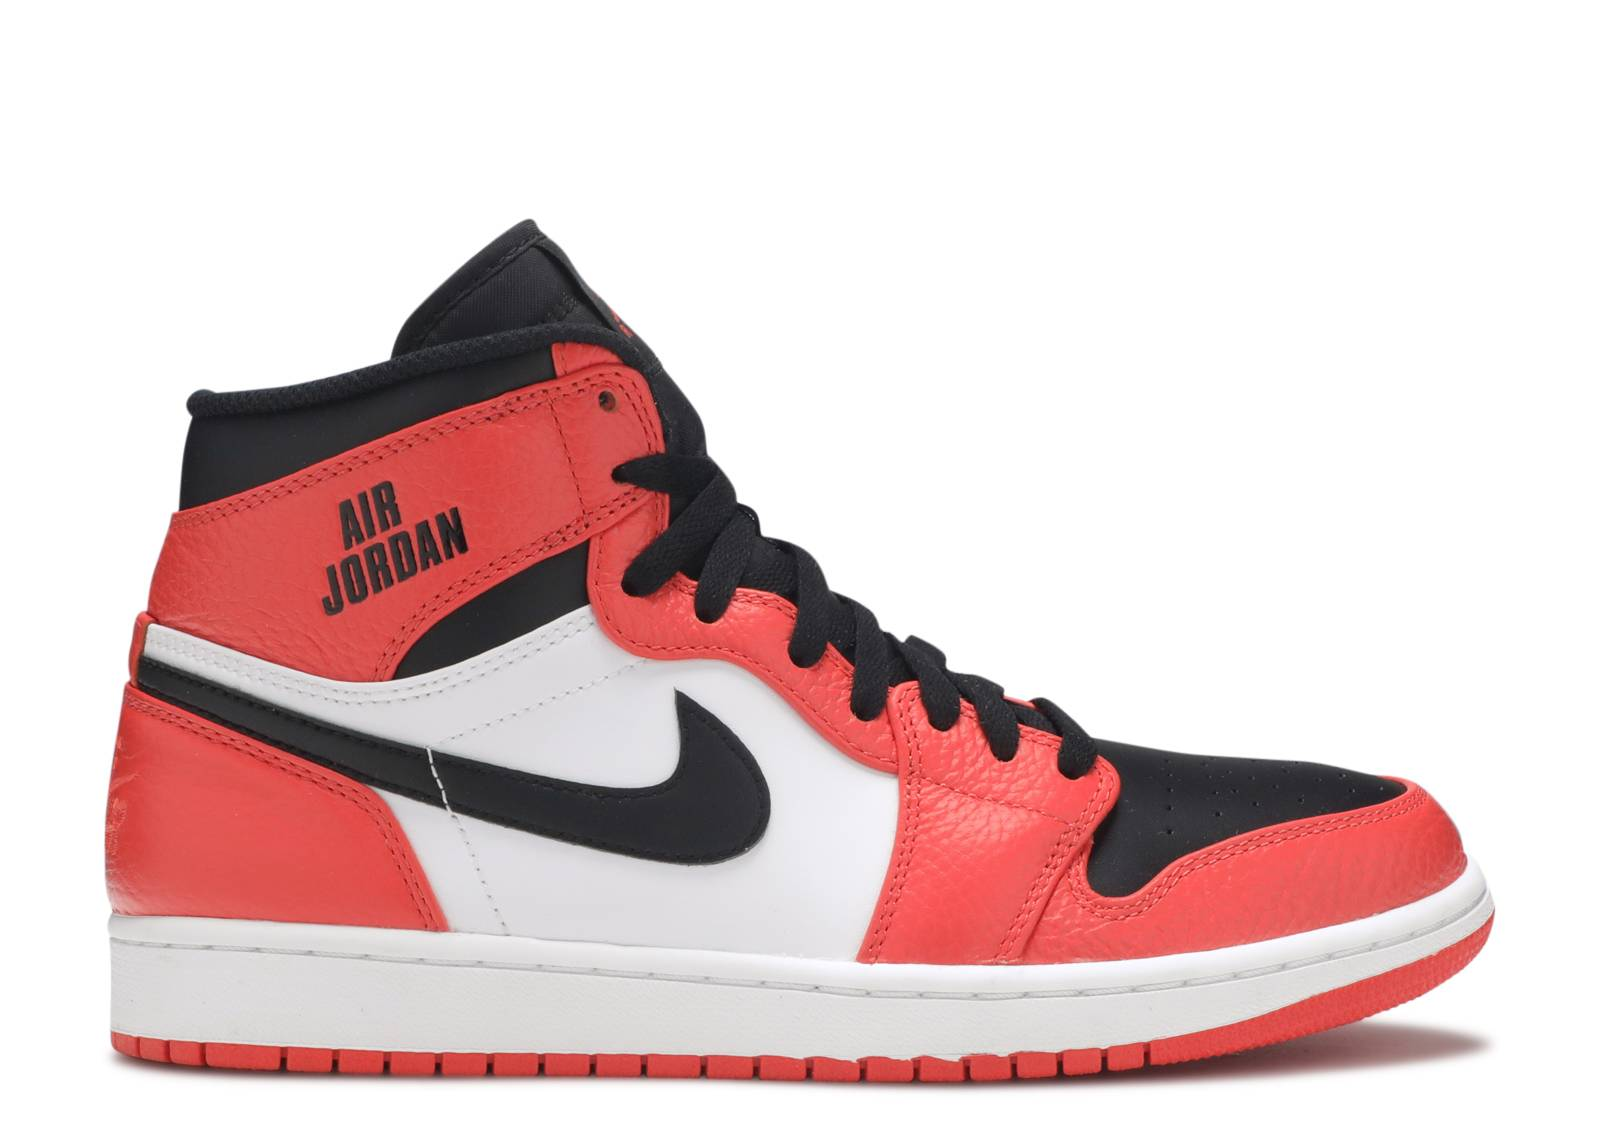 619abfb669e Air Jordan 1 Retro High - Air Jordan - 332550 800 - max orange ...